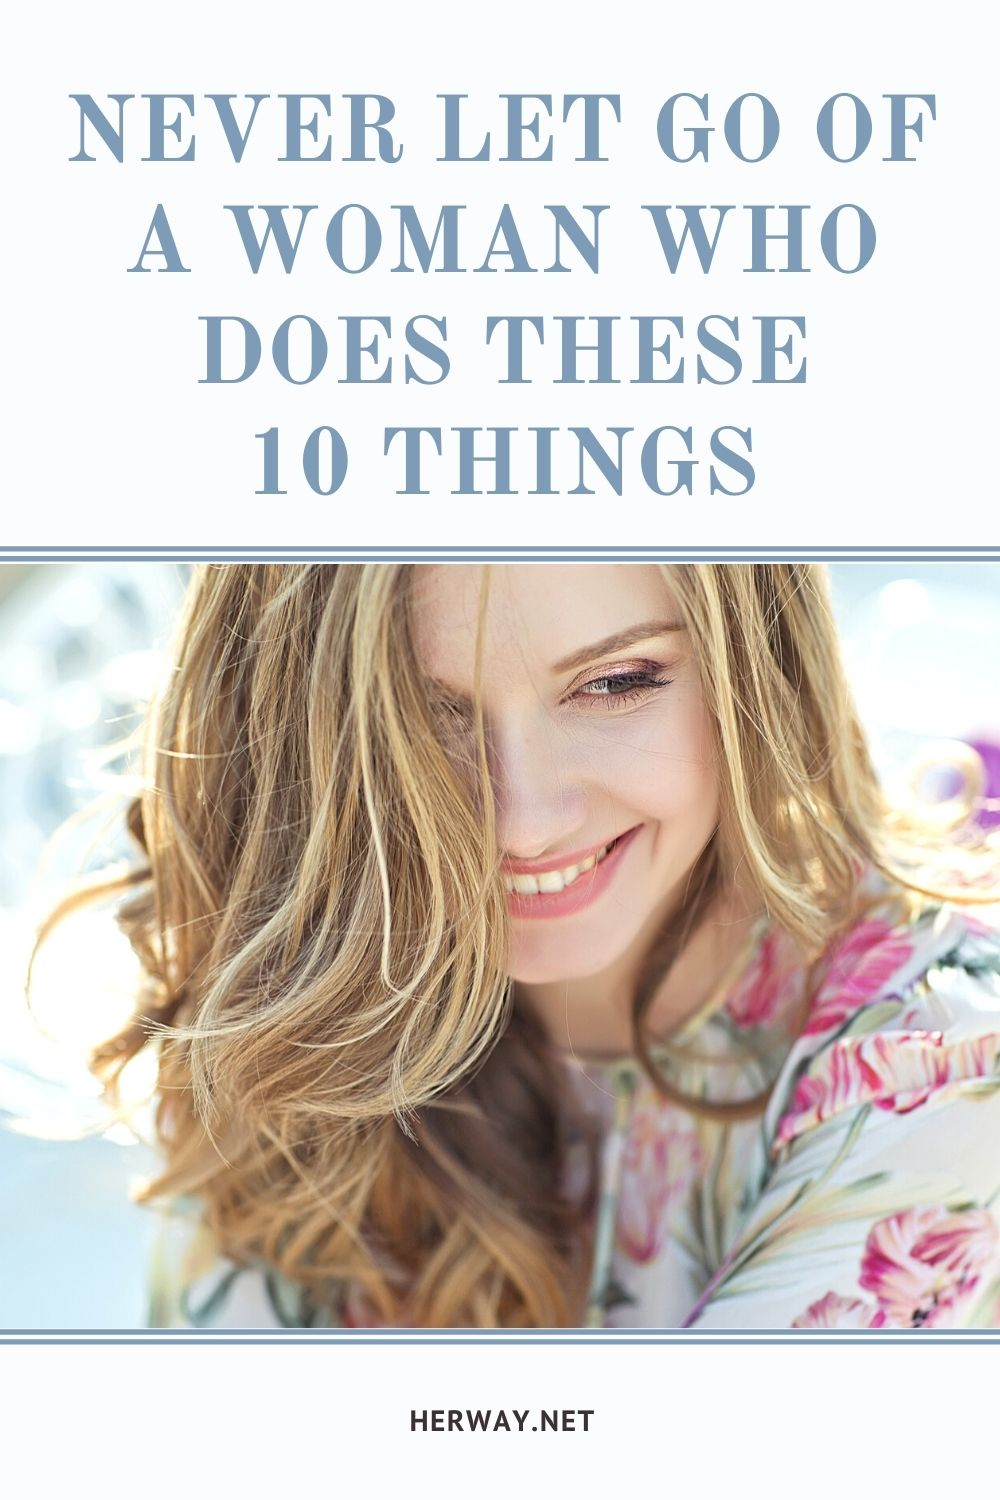 Never Let Go Of A Woman Who Does These 10 Things